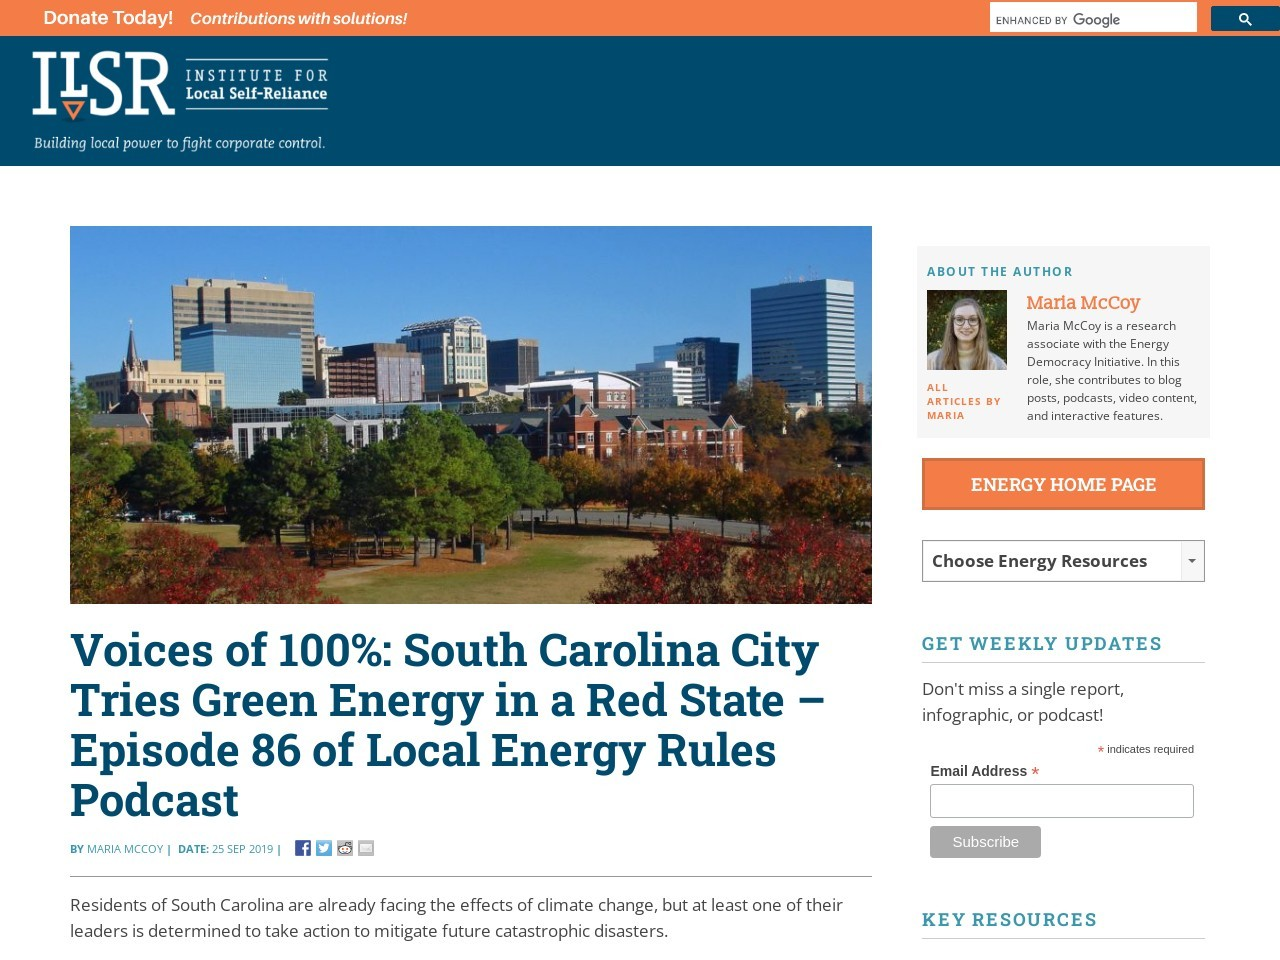 Voices of 100%: South Carolina City Tries Green Energy in a Red State